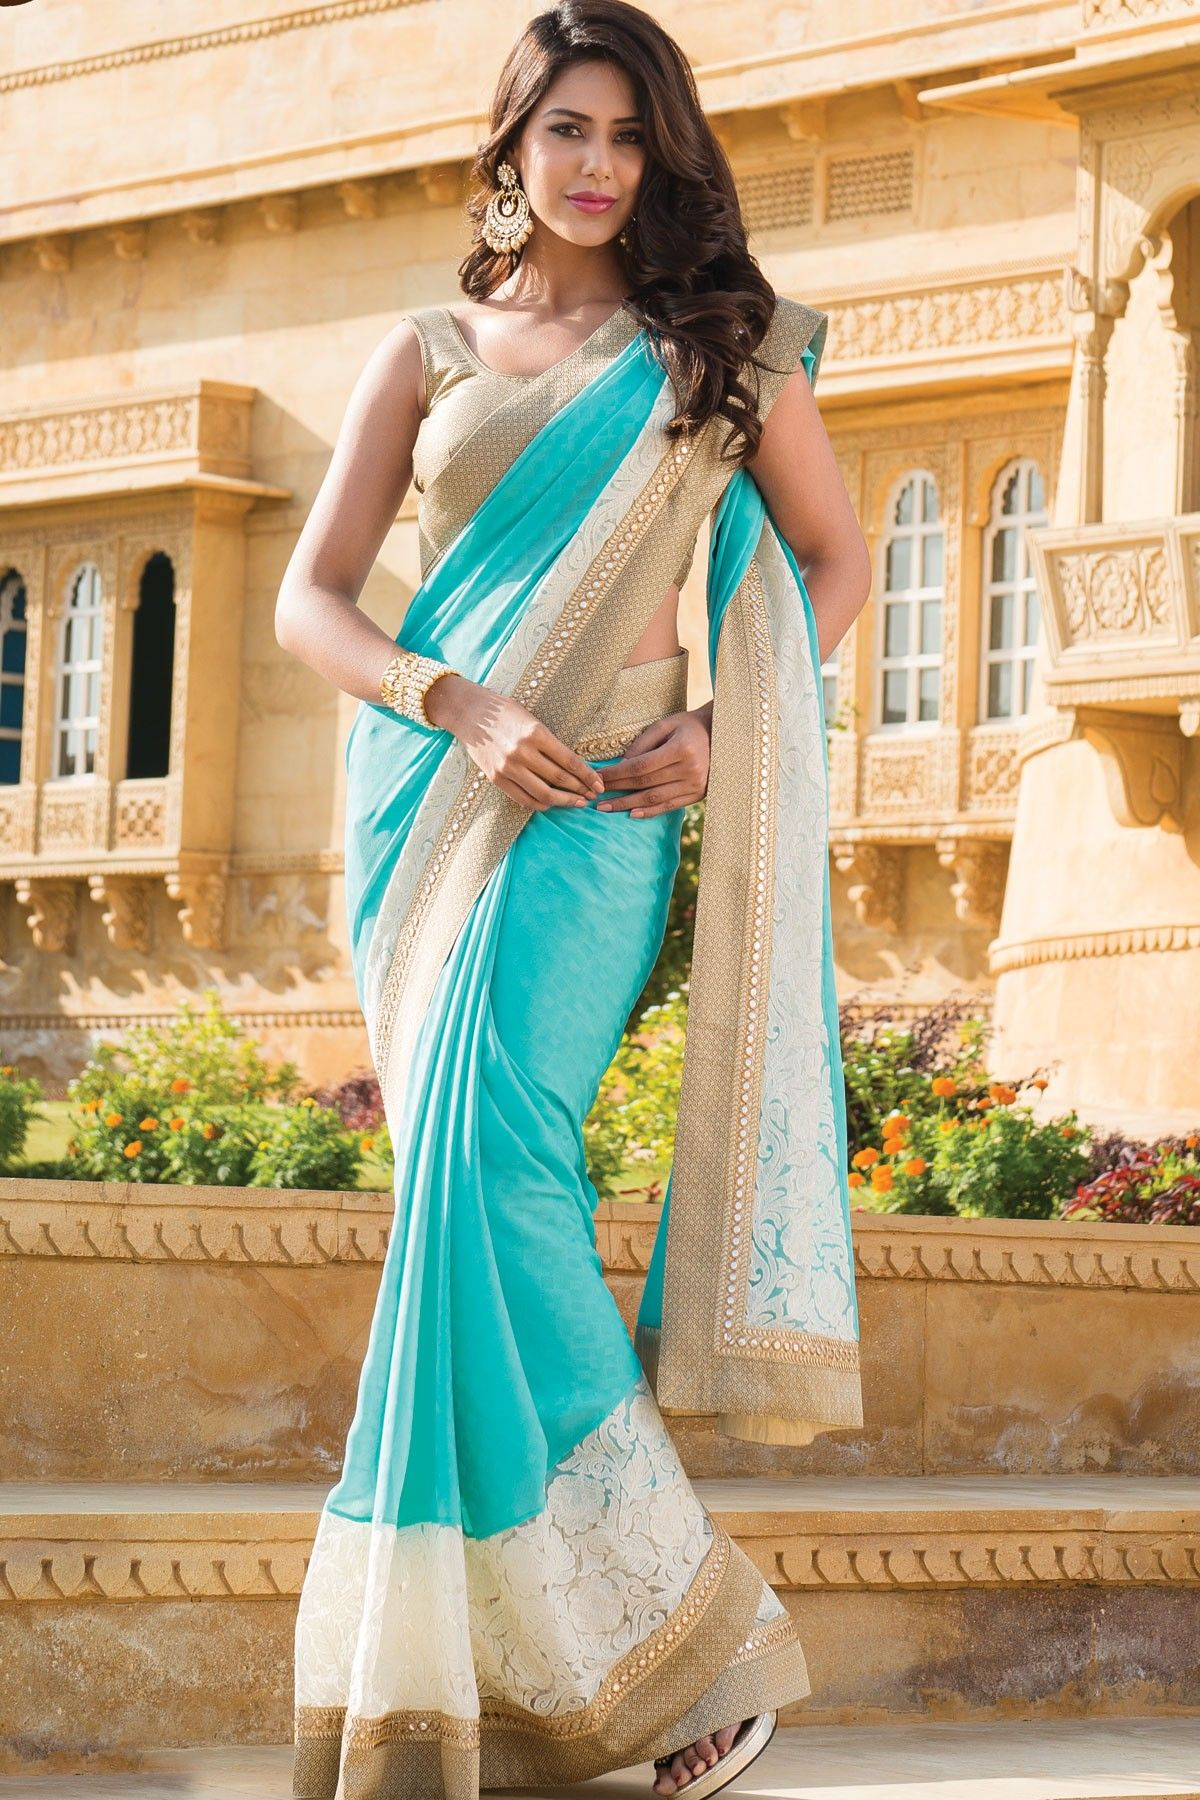 abe56f9a82c169 Classy Sky  blue plain georgette  designer saree in  golden shimmer blouse    sky blue plain pallu along with  white   gold saree  border